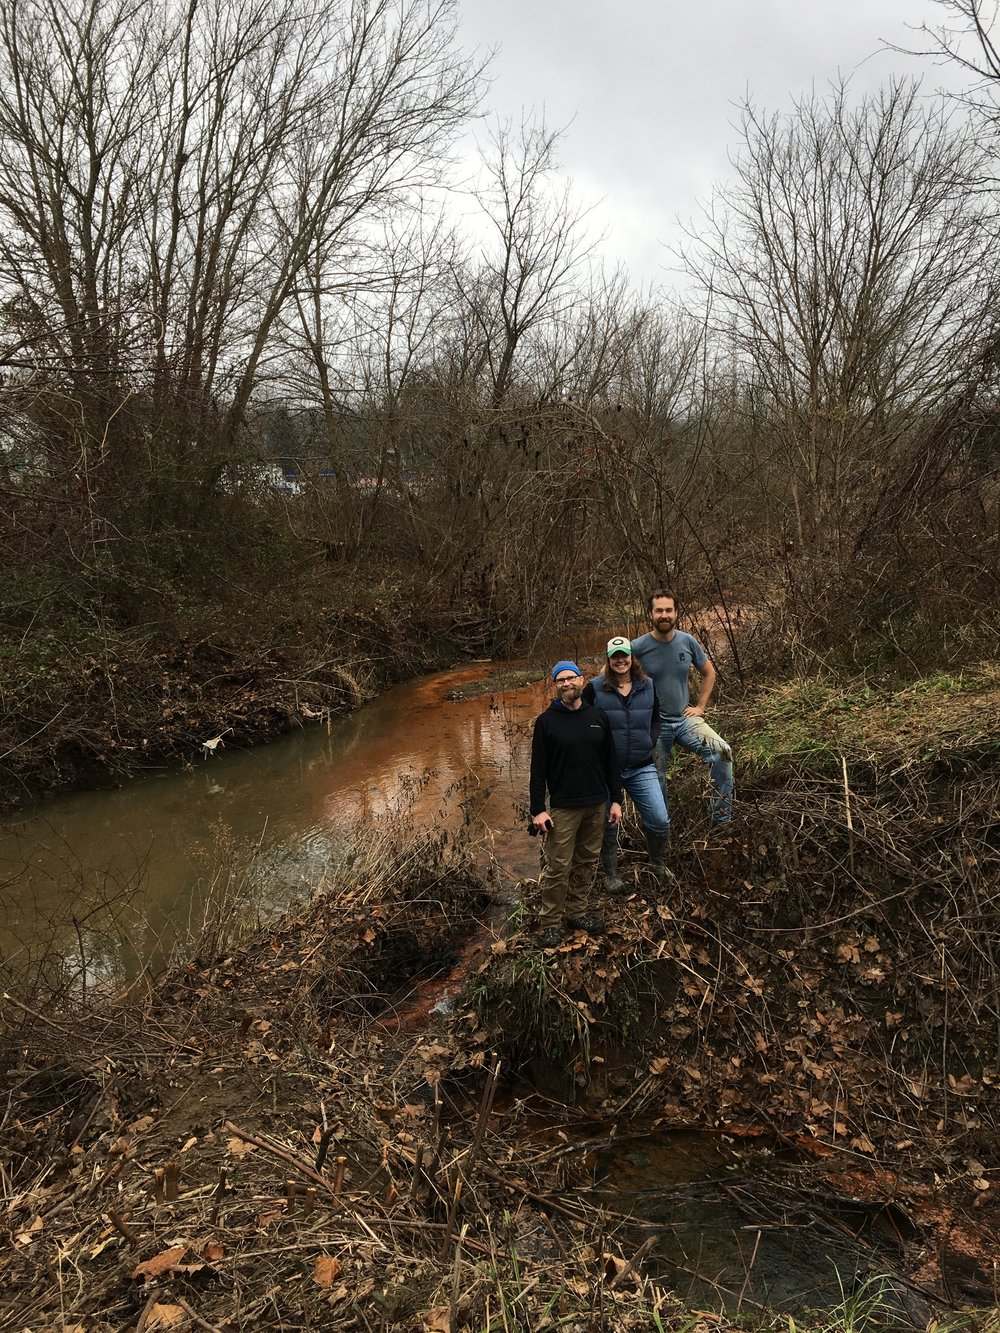 Guy Riefler, Michelle Shively and me posing next to the acid mine seep at Corning OH, this day we cleared the area of thorny bushes. This seep leeches over a million gallons of pollution into Sunday Creek everyday.